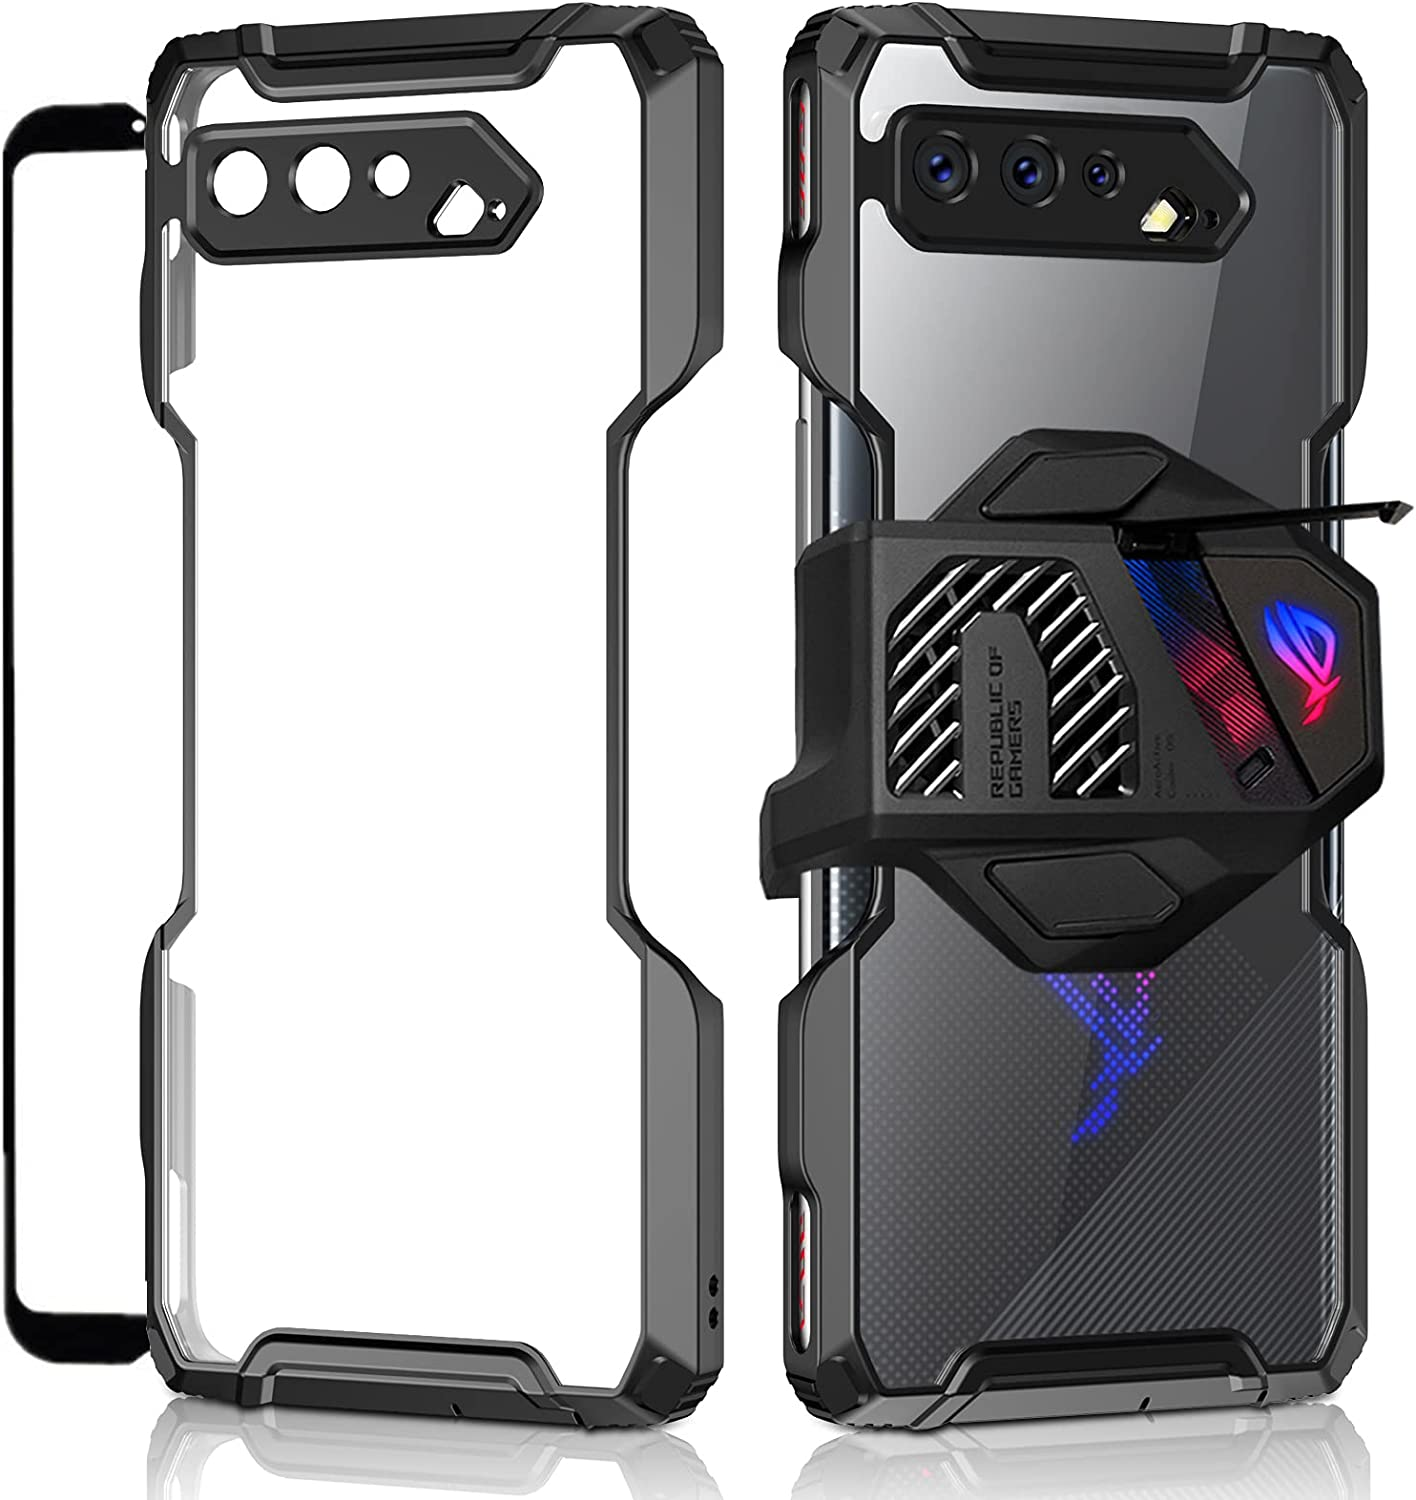 MME Case for ASUS ROG Sales results No. 1 Phone 5s Ultimate Pro Ranking TOP15 - Armor 5